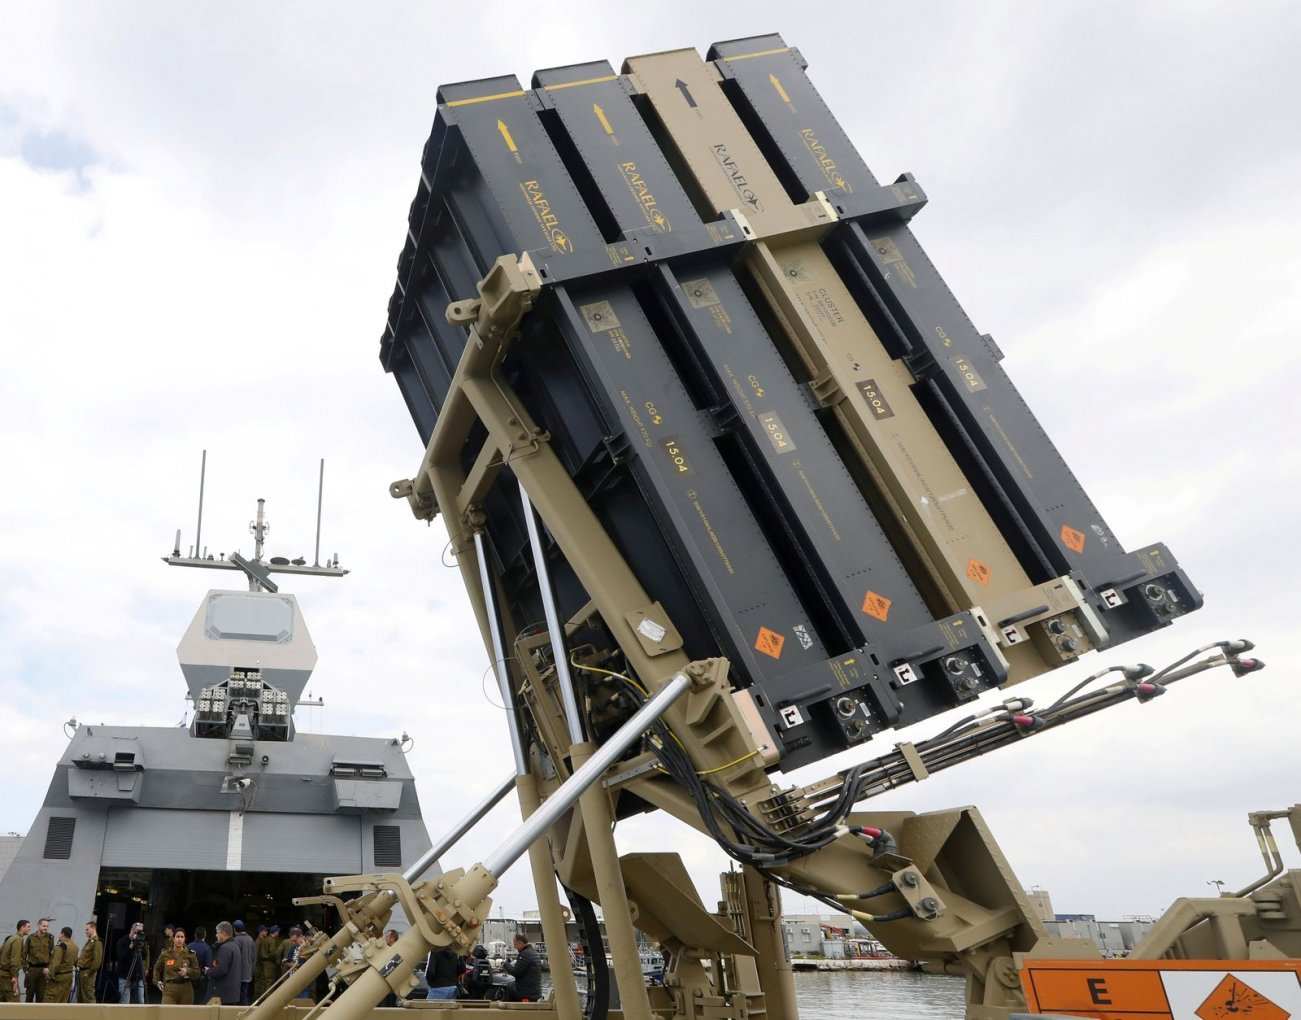 Yes, the U.S. Army Is Getting Its Own Iron Dome Defense System